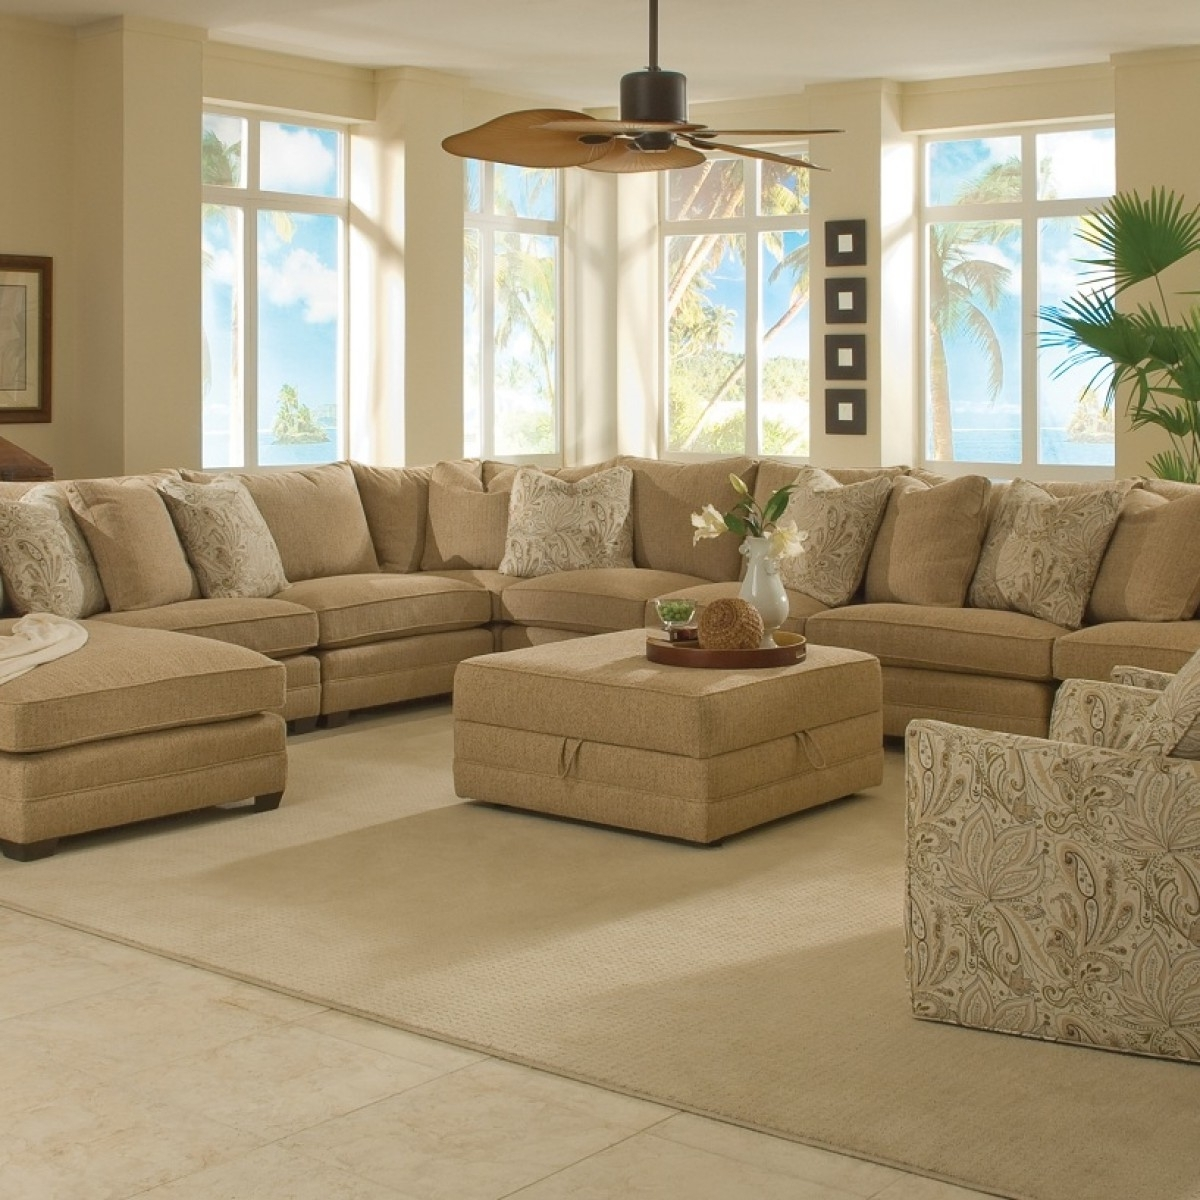 Sectional Couches With Large Ottoman With Well Liked Factors To Consider Before Buying An Extra Large Sectional Sofa (View 12 of 15)